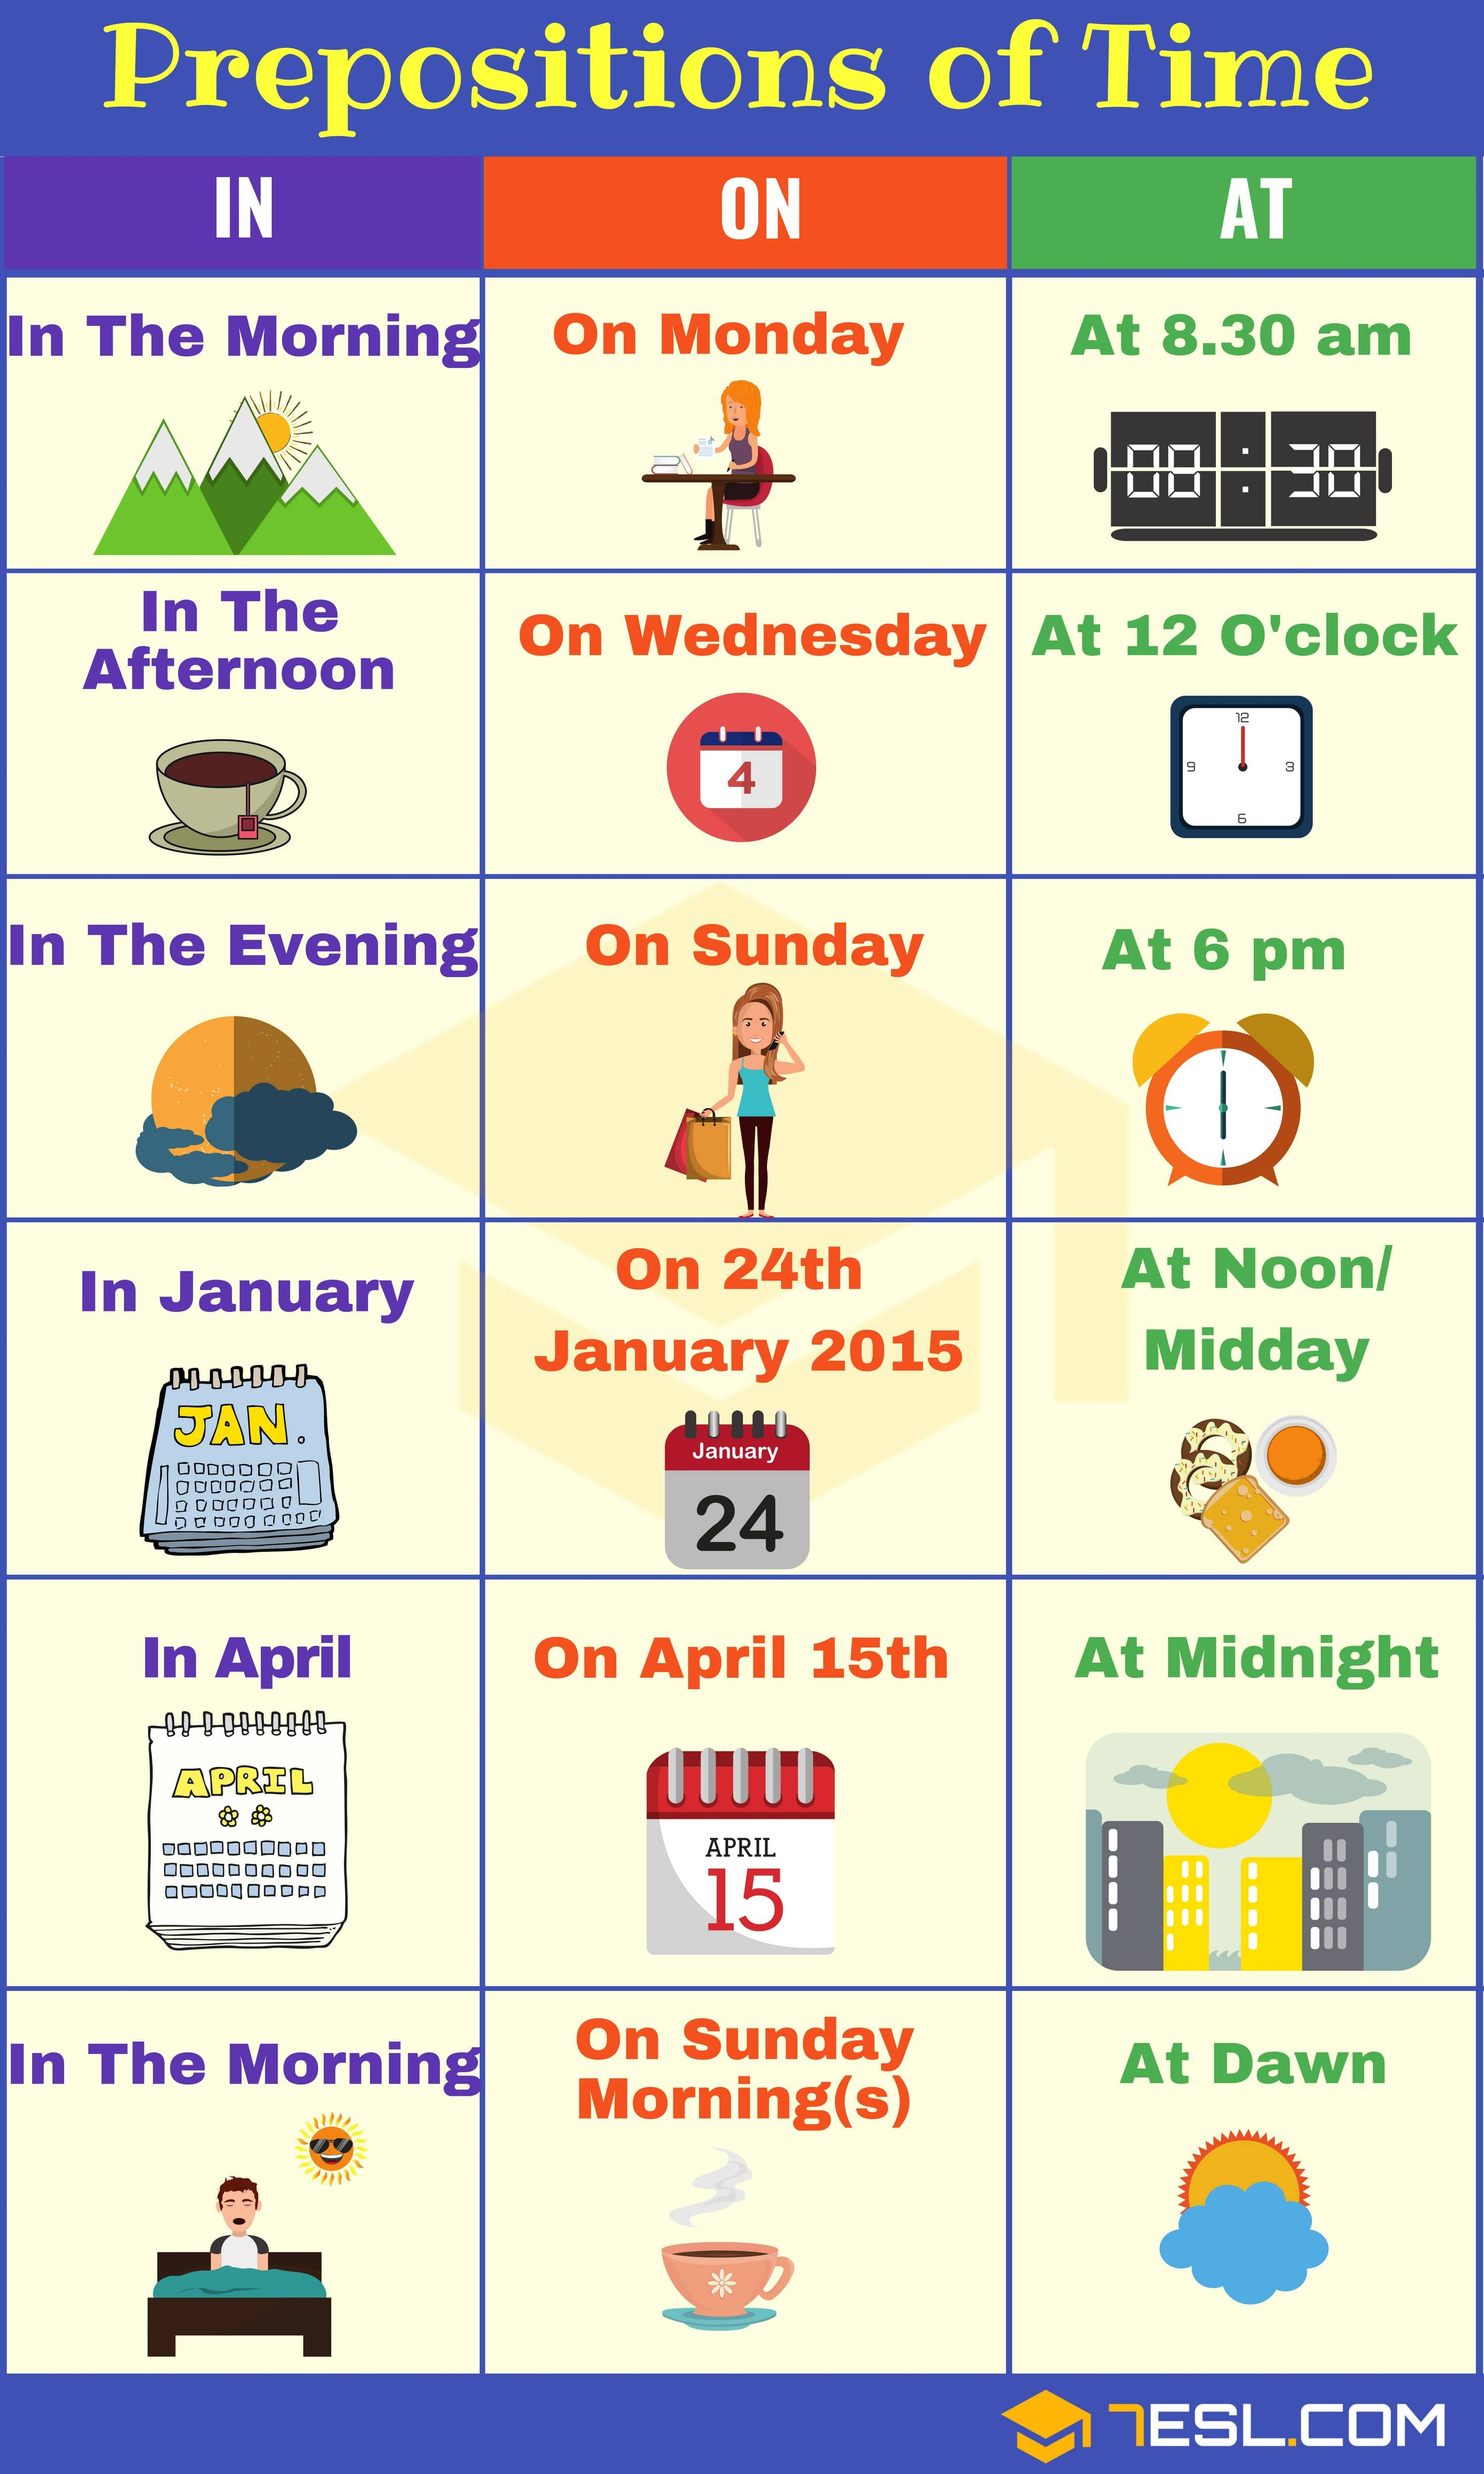 Prepositions Of Time: Definition, List And Useful Examples - 7 E S L |  English prepositions, Learn english vocabulary, English learning spoken